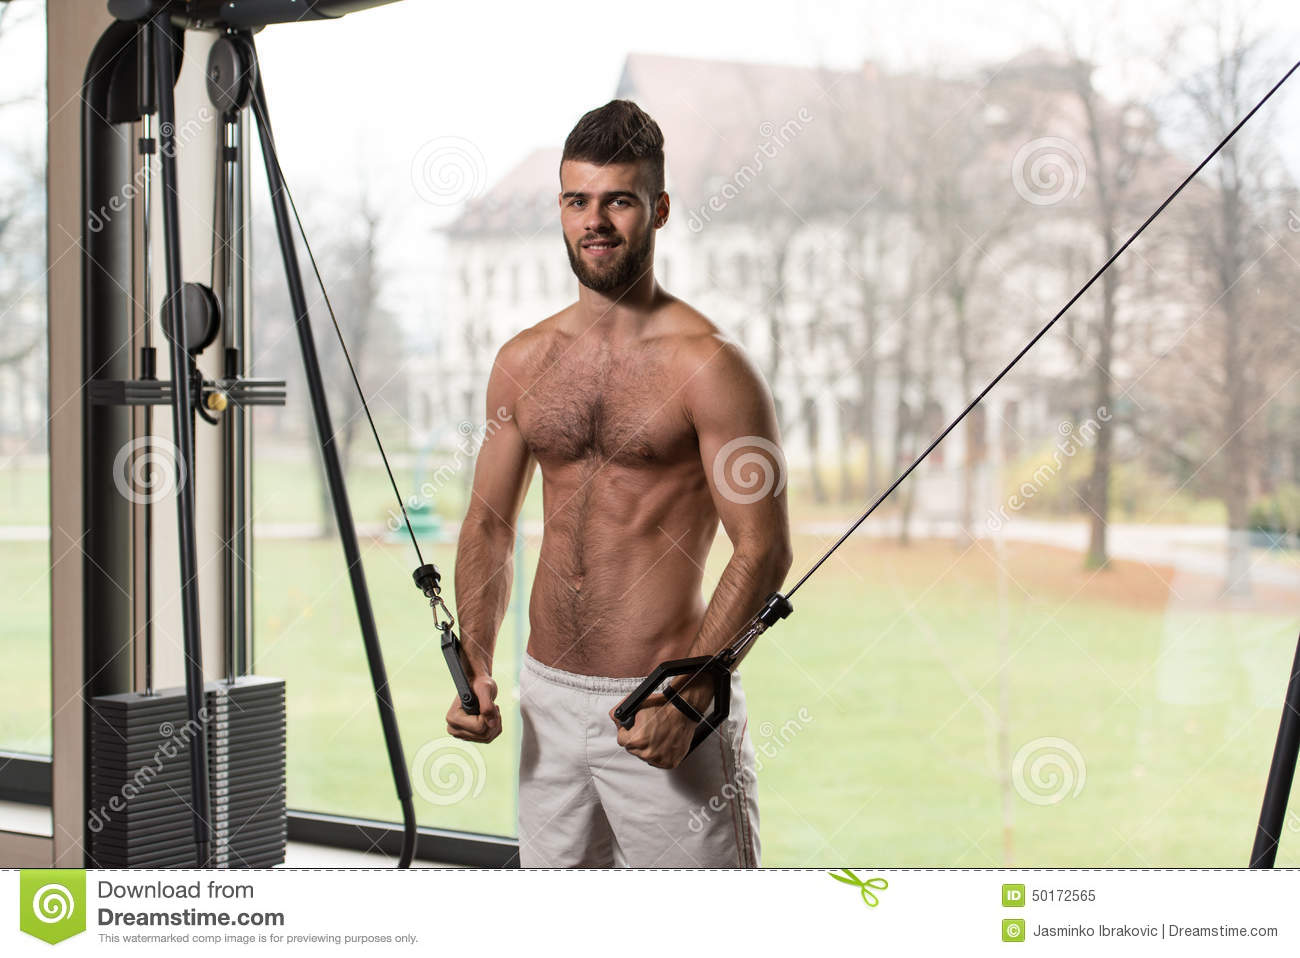 Chest Workout With Cables Stock Photo - Image: 50172565